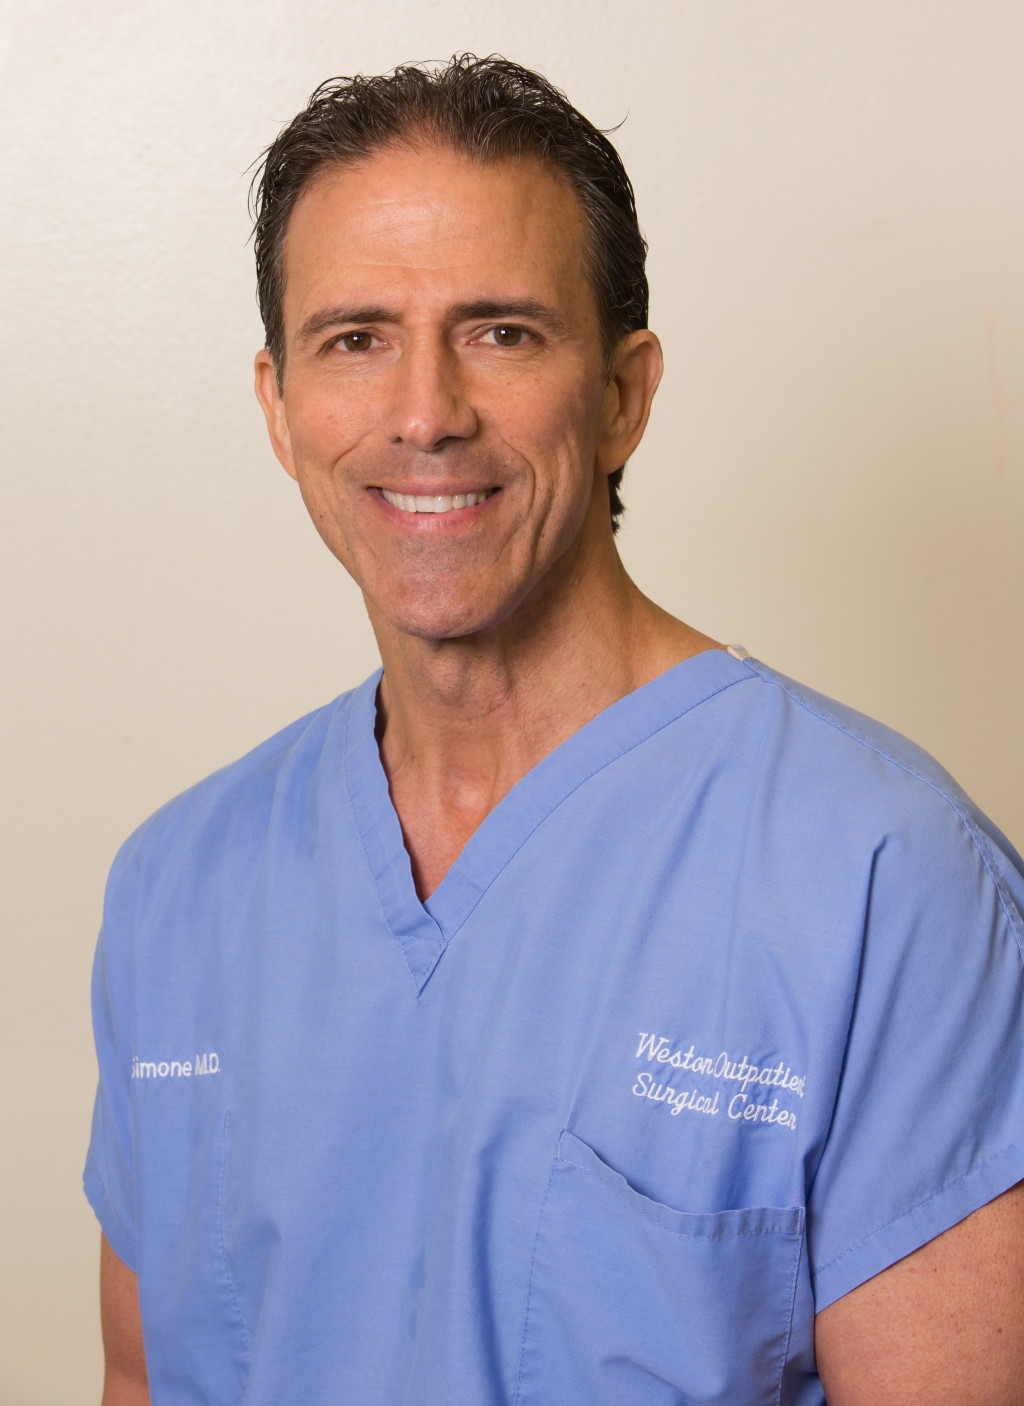 Dr Al Desimone - Orthopedic Surgeon